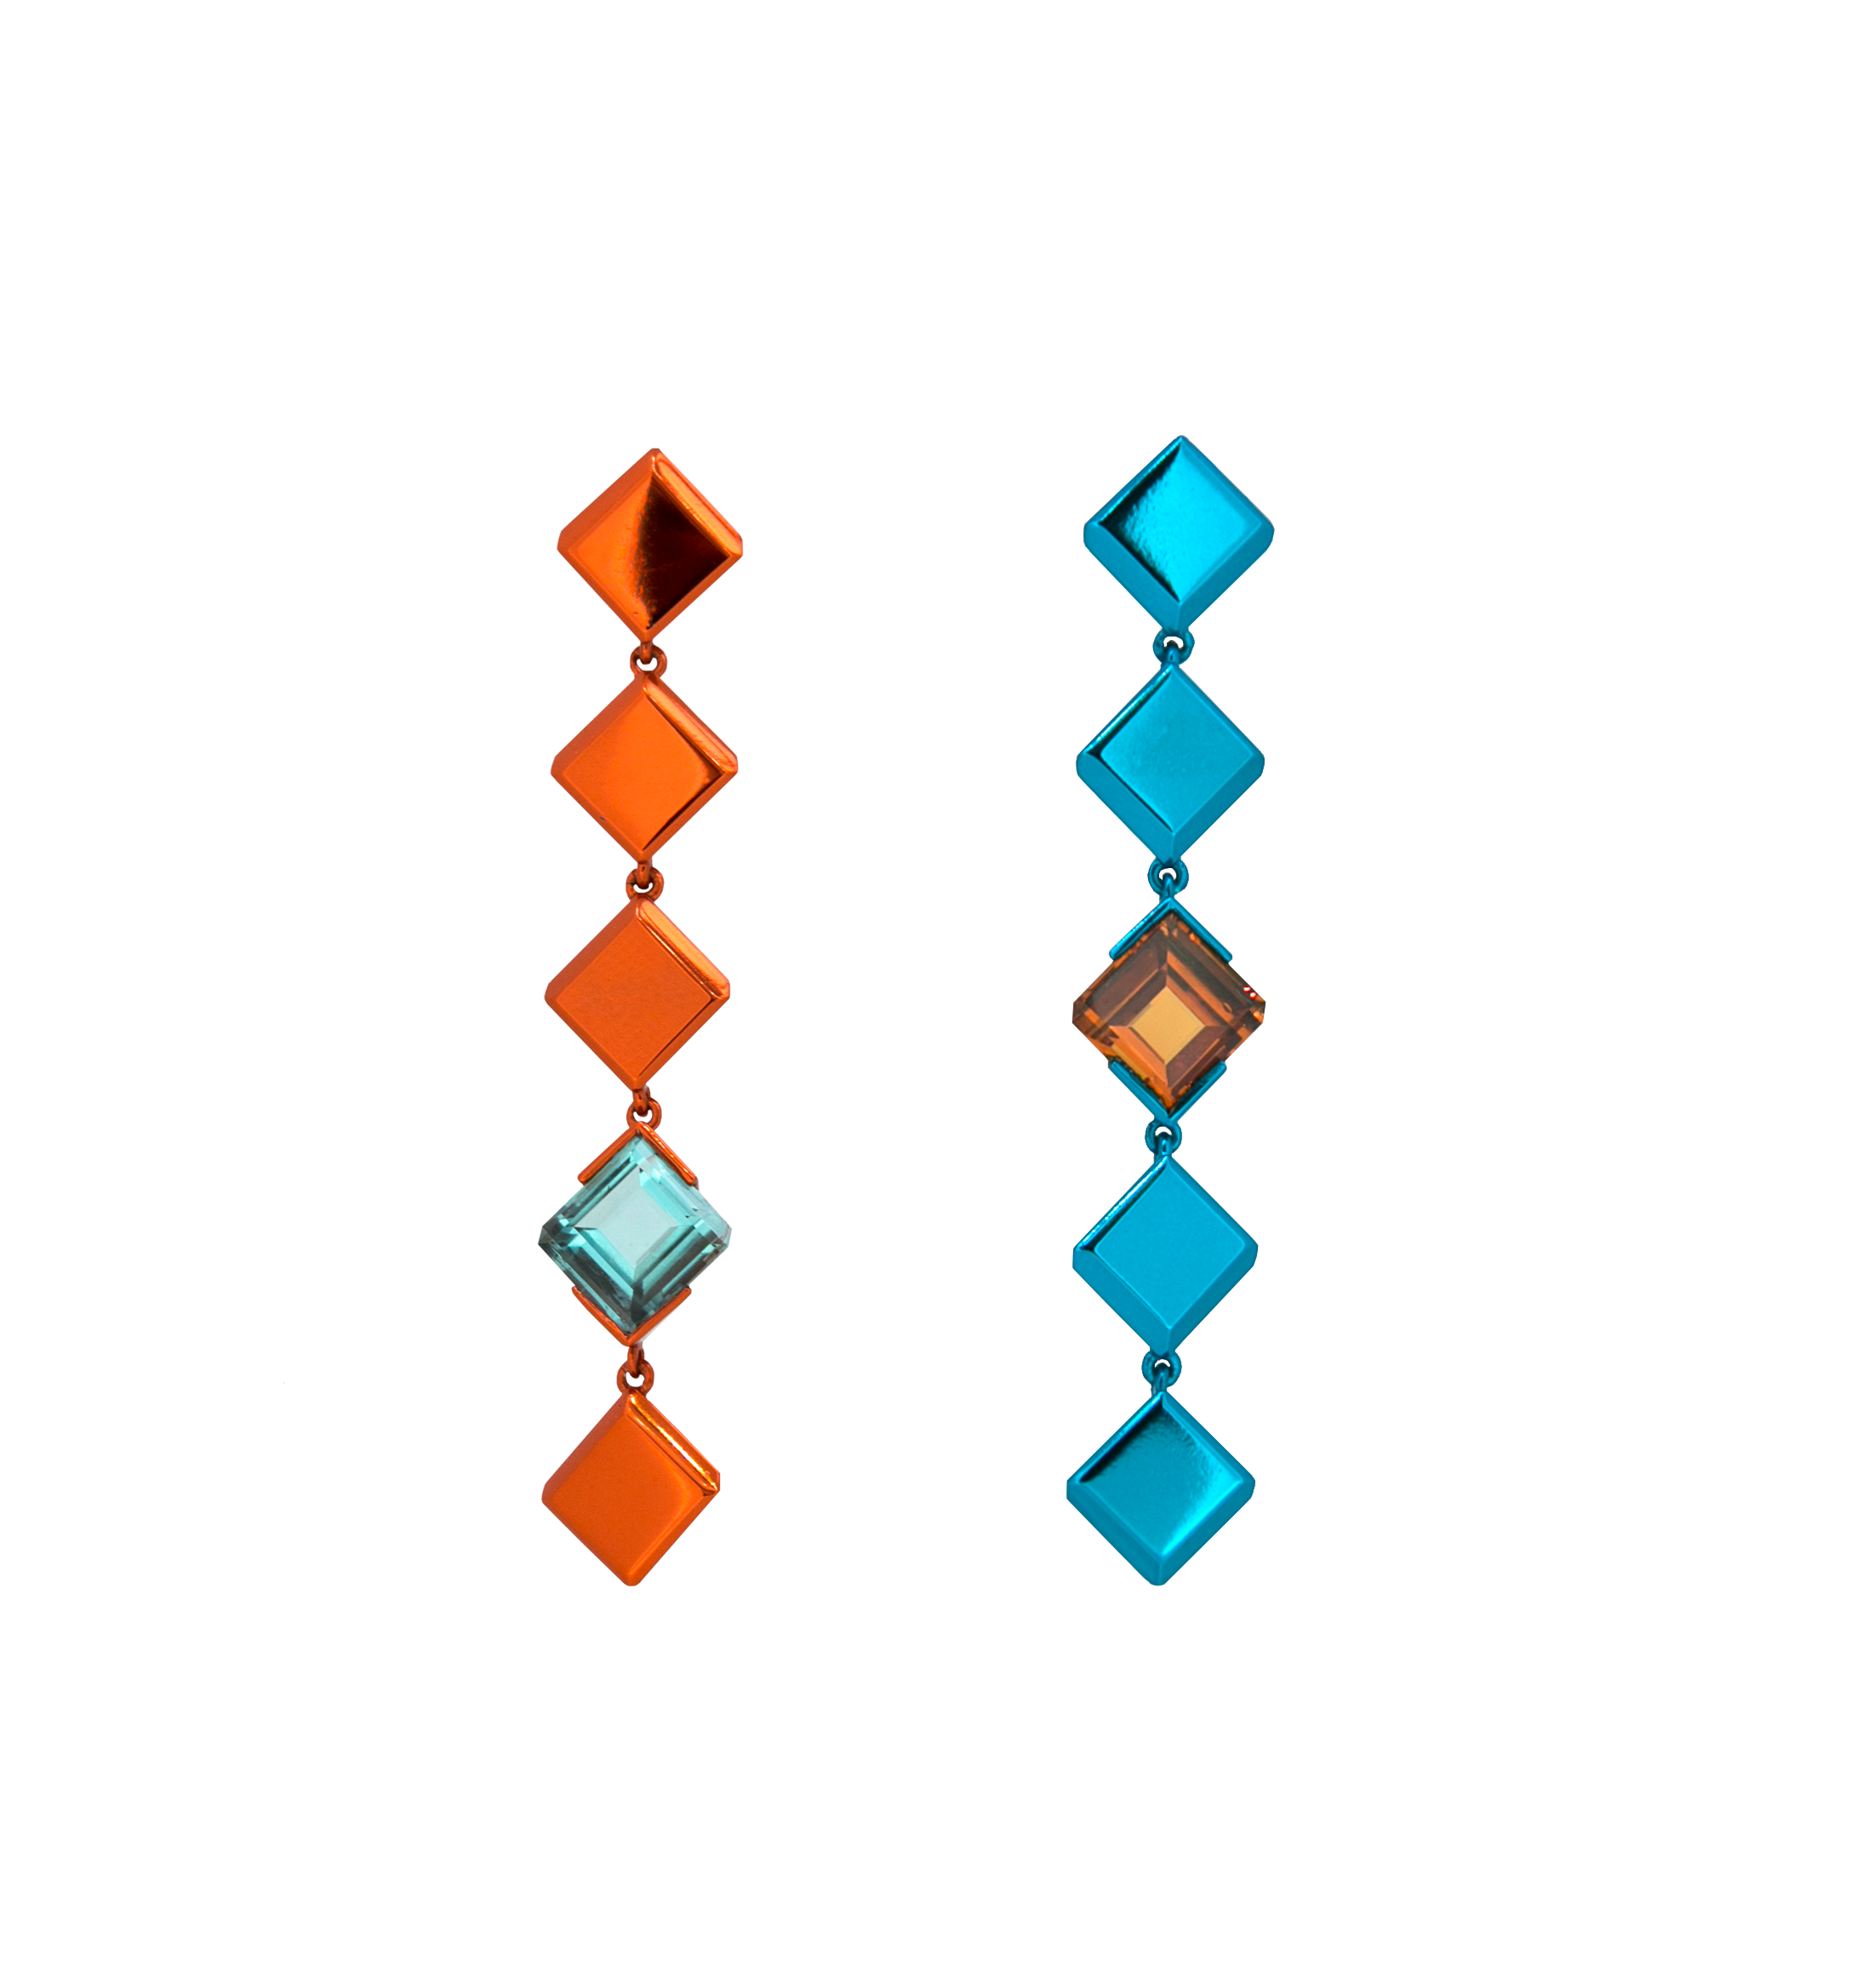 Chromanteq 18ct Recycled White Gold, Orange and Blue Nano Ceramic Plated Drop Earrings with 2.12ct Afghan Tourmaline and 2.82ct Mandarin Garnet